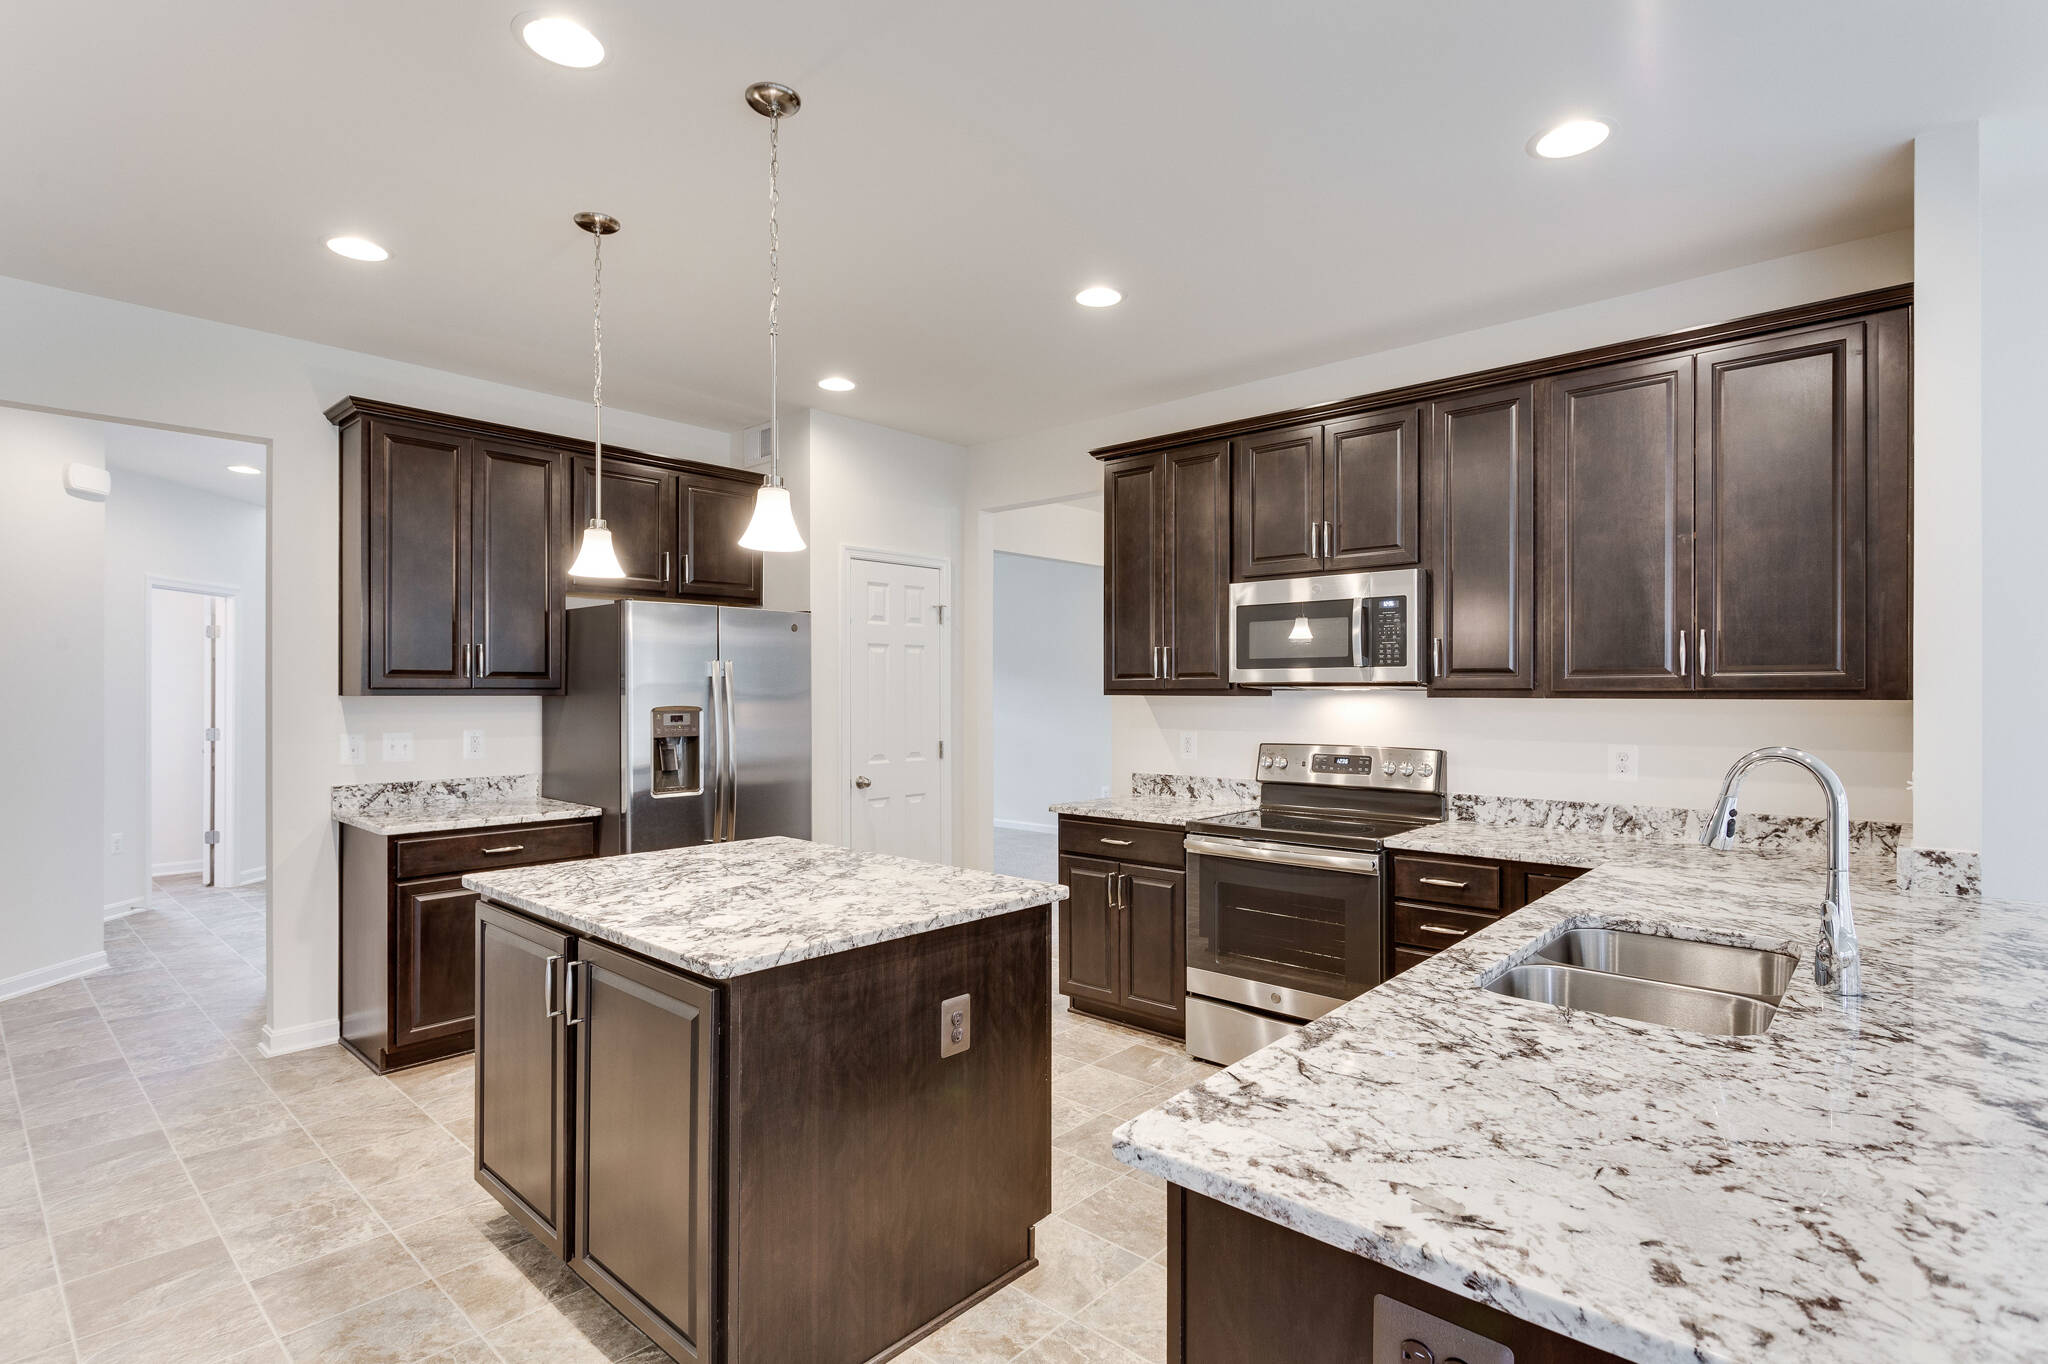 kitchen peachtree II 16 lot 10 new homes at wellspring